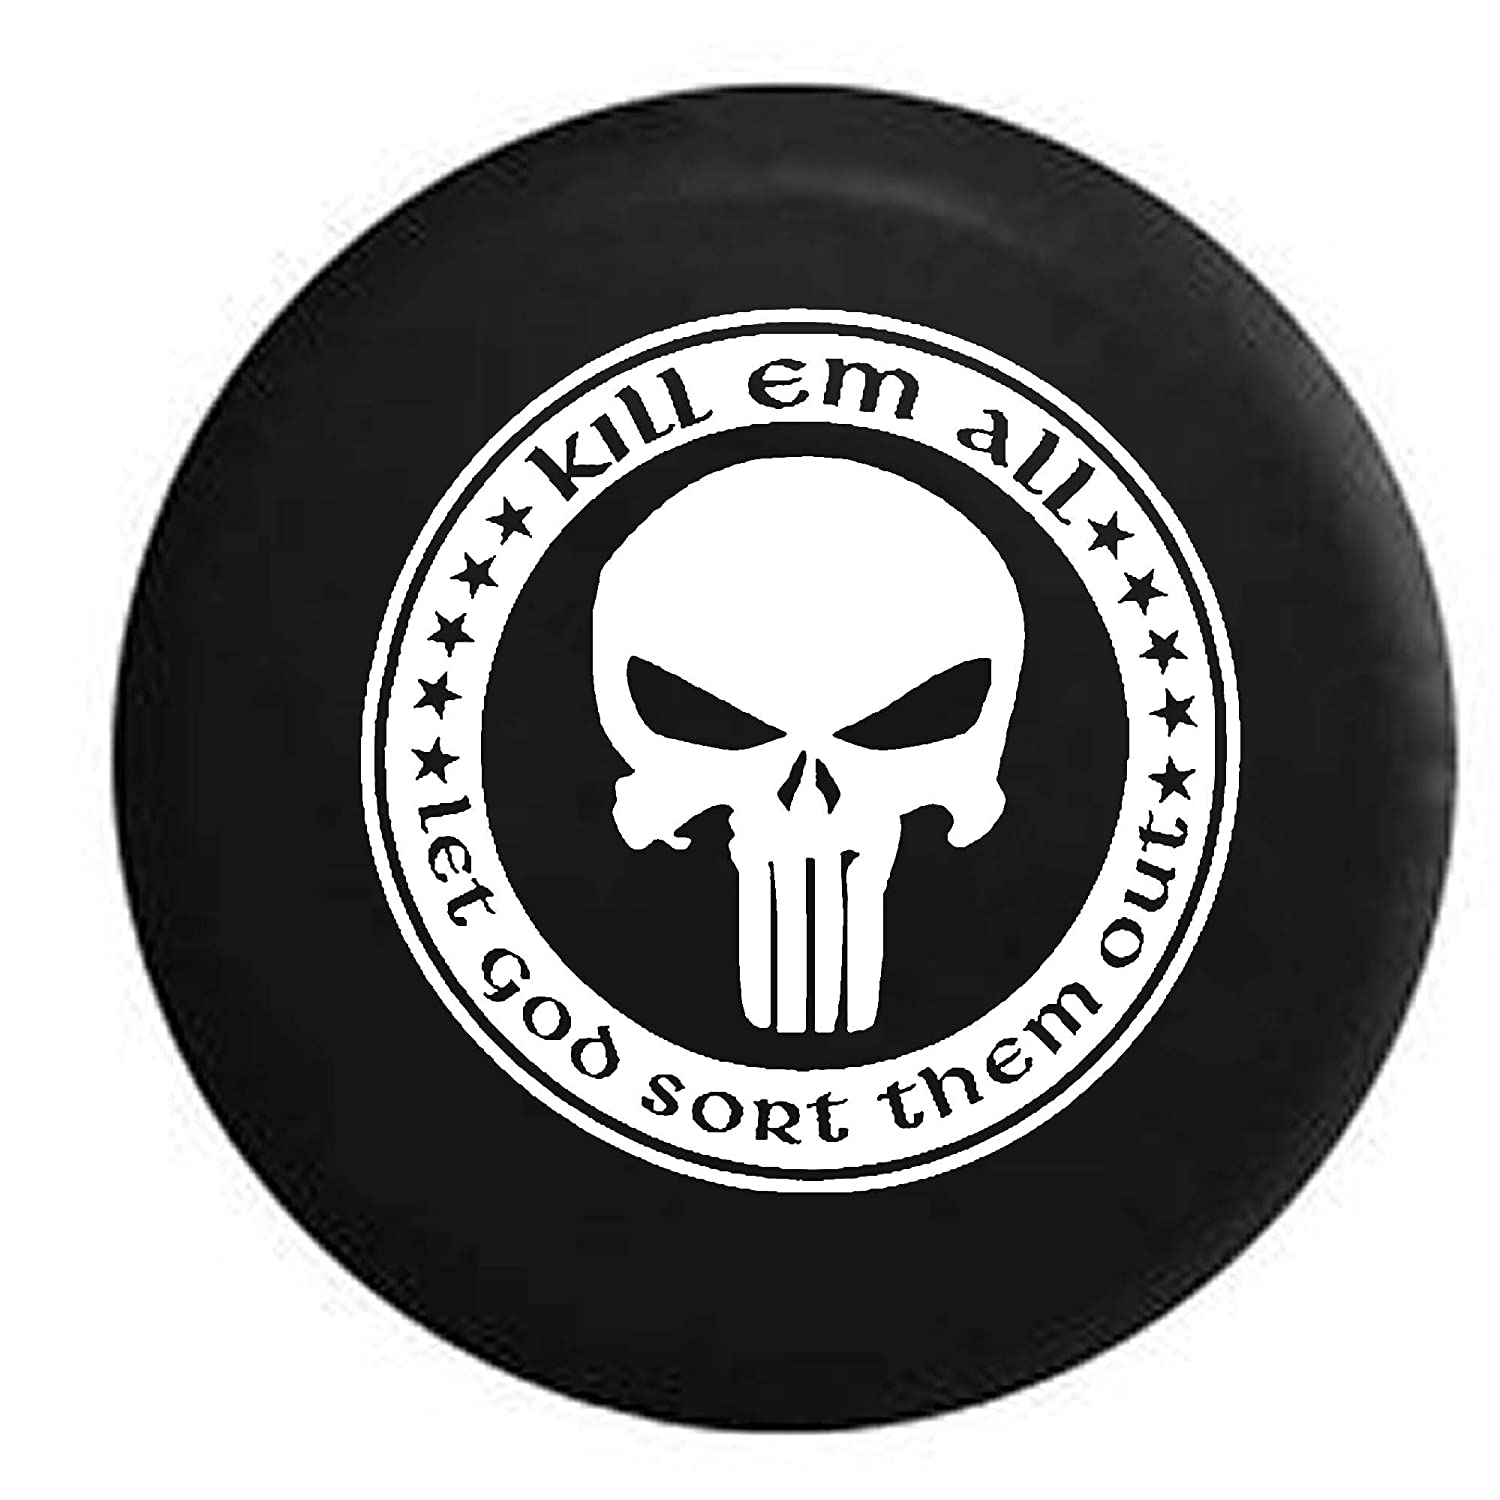 Camo Kill Em All Let God Sort Them Out Punisher Skull Shield Military ISIS Spare Tire Cover OEM Vinyl Black 33 in Pike Outdoors